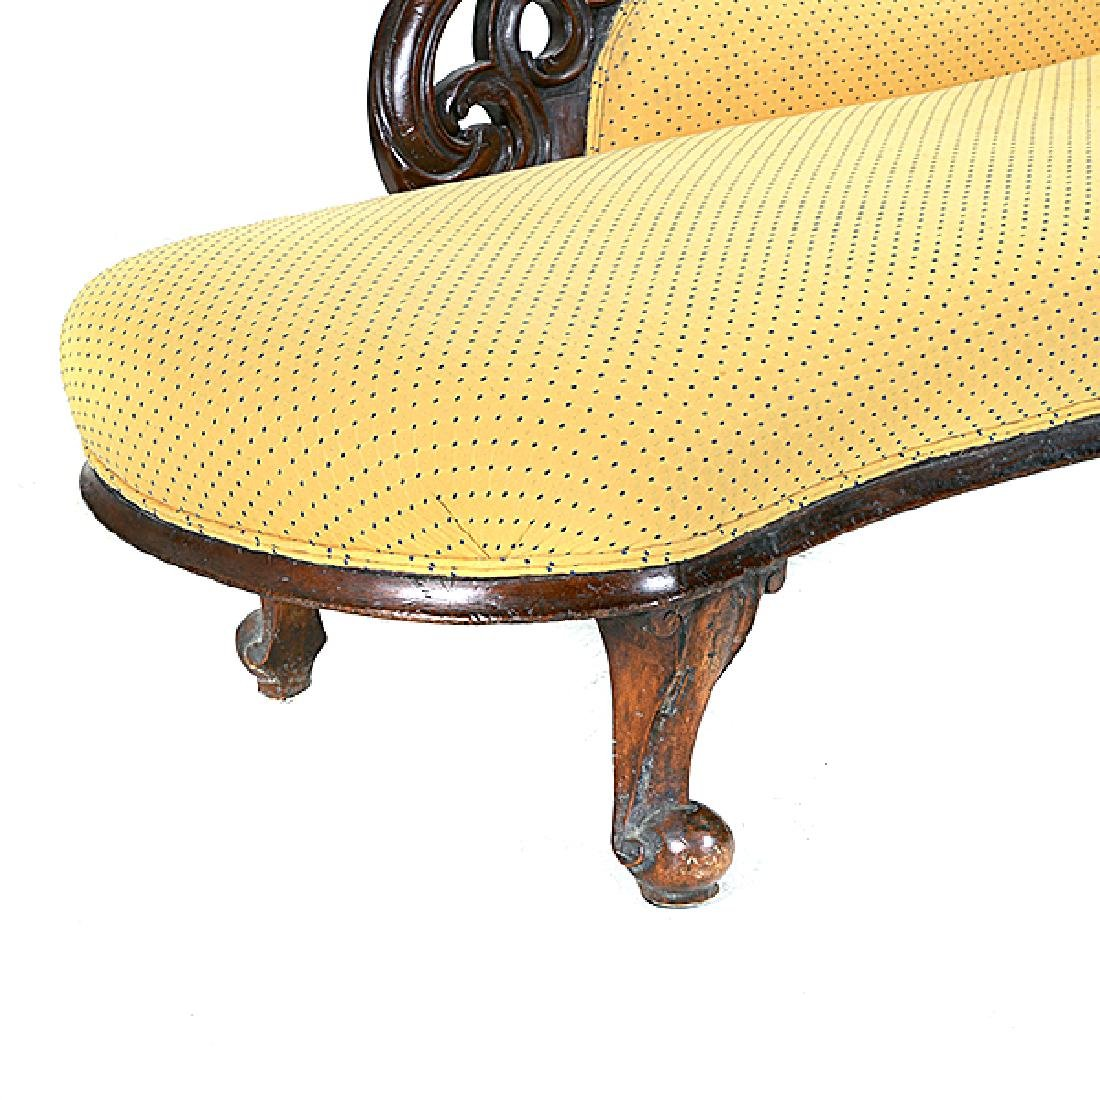 Louis Phillipe Walnut Recamier with Yellow Pattern - 4